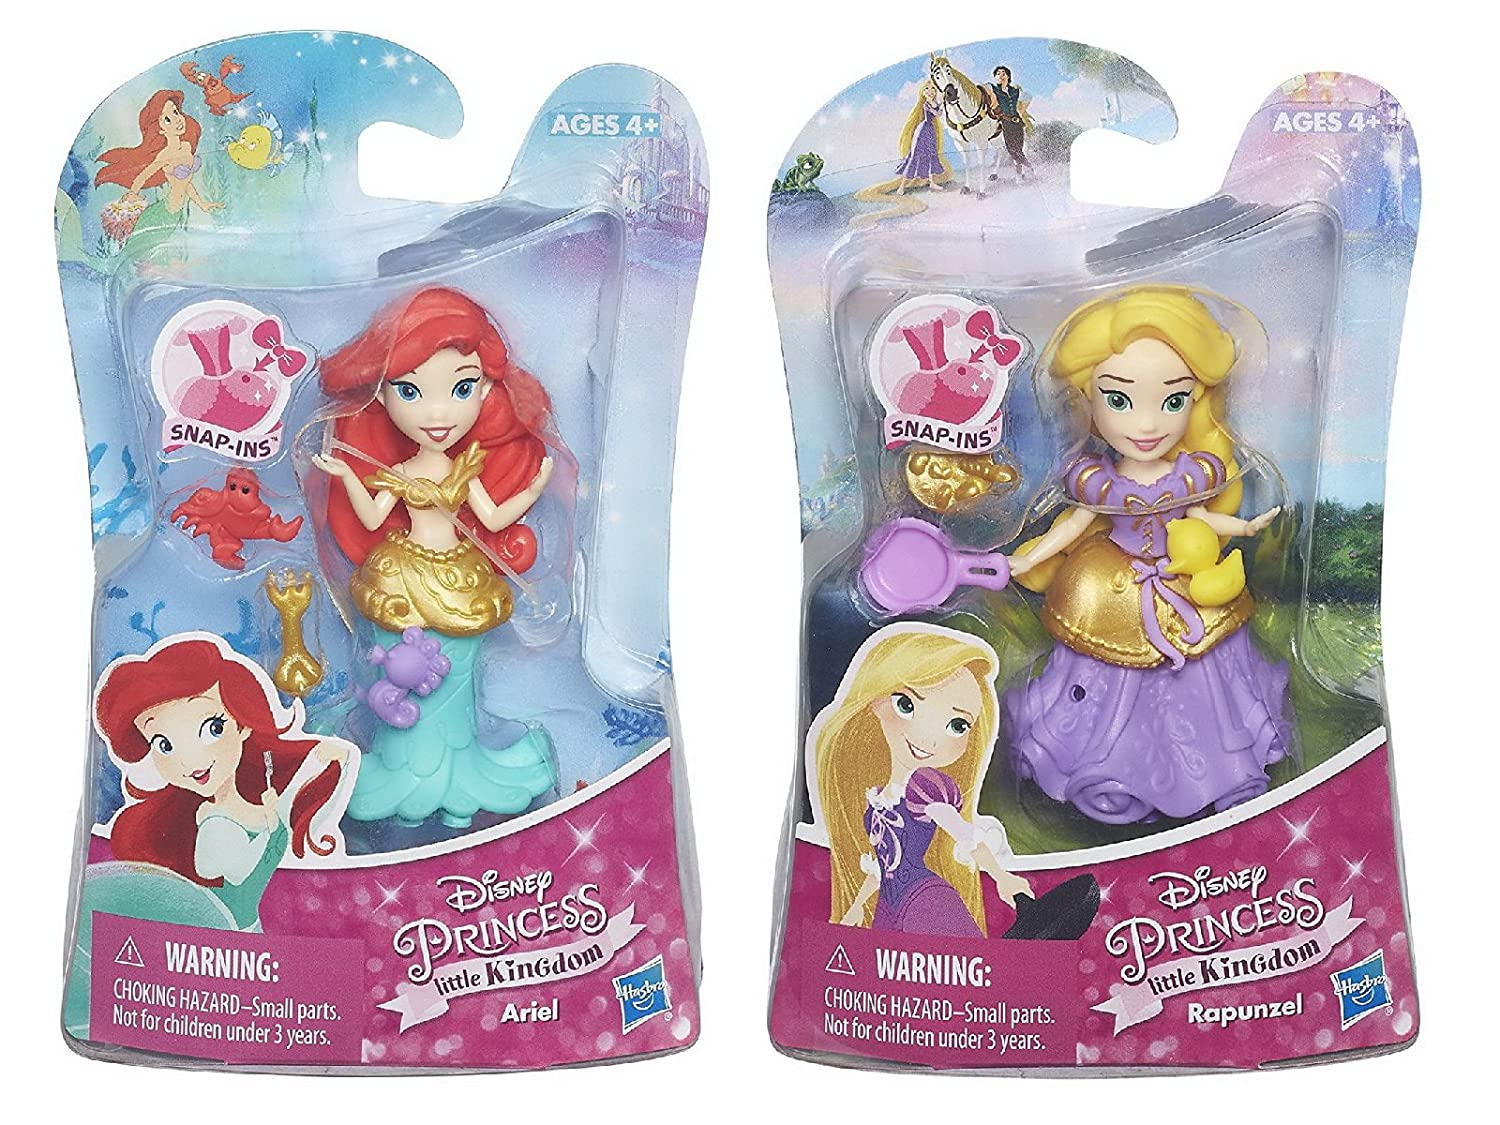 Set of 2 Disney Princess Little Kingdom Classic Dolls Ariel /& Rapunzel